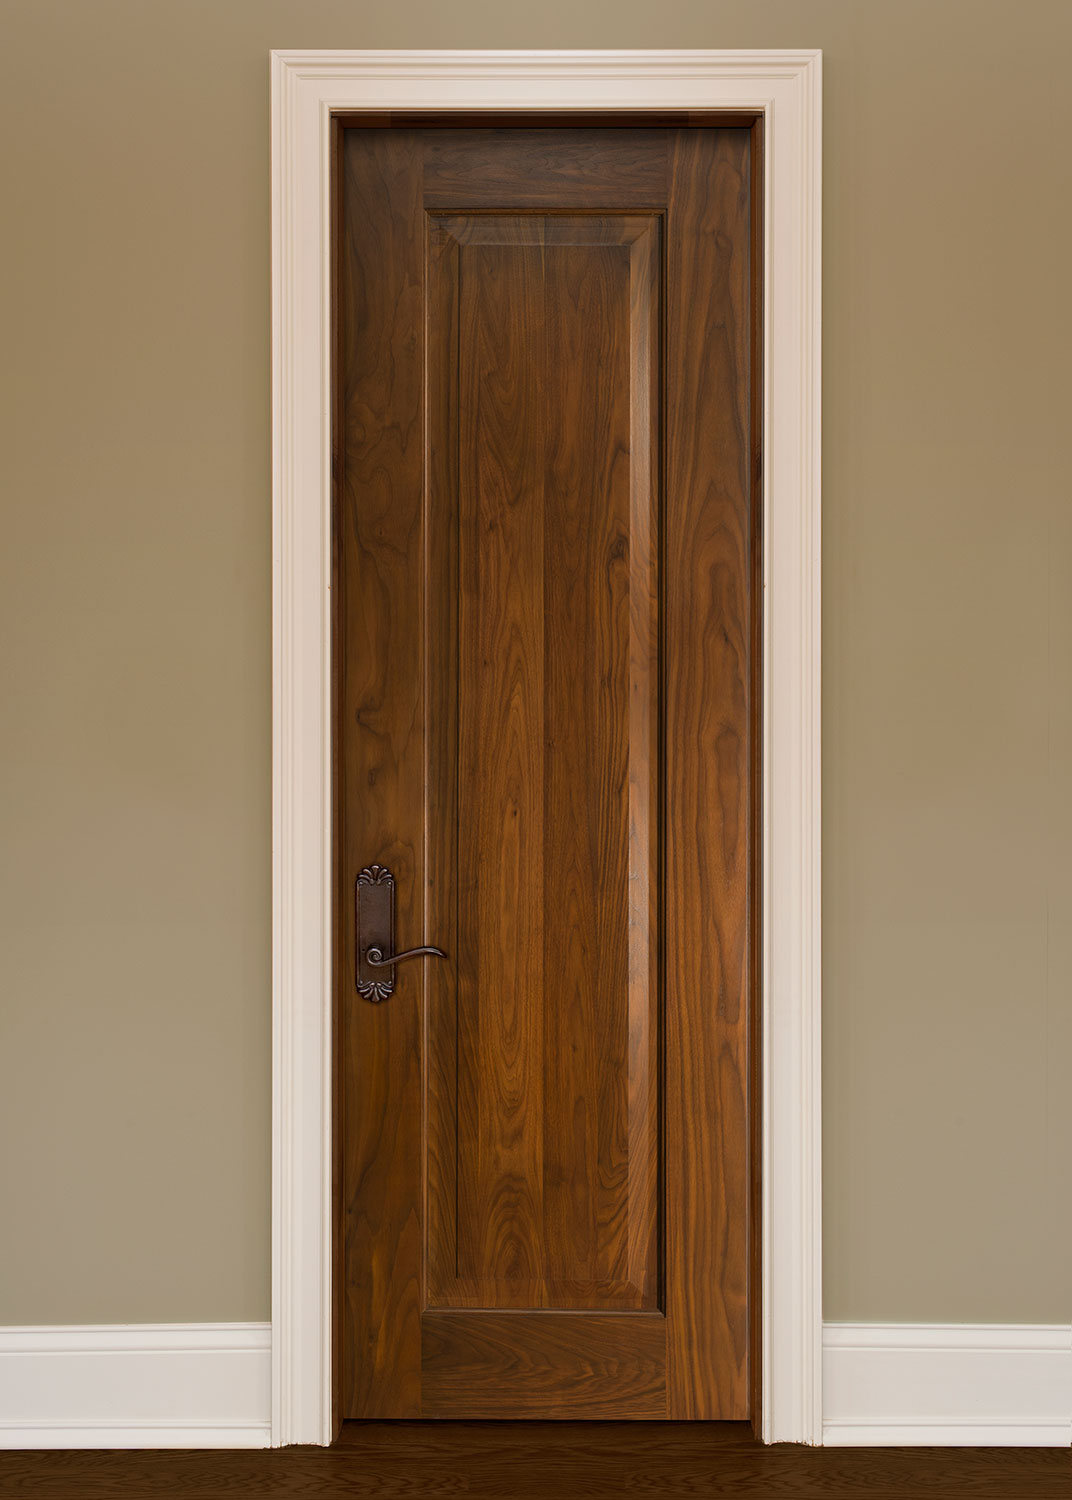 Solid wood rustic interior doors look simple yet stylish